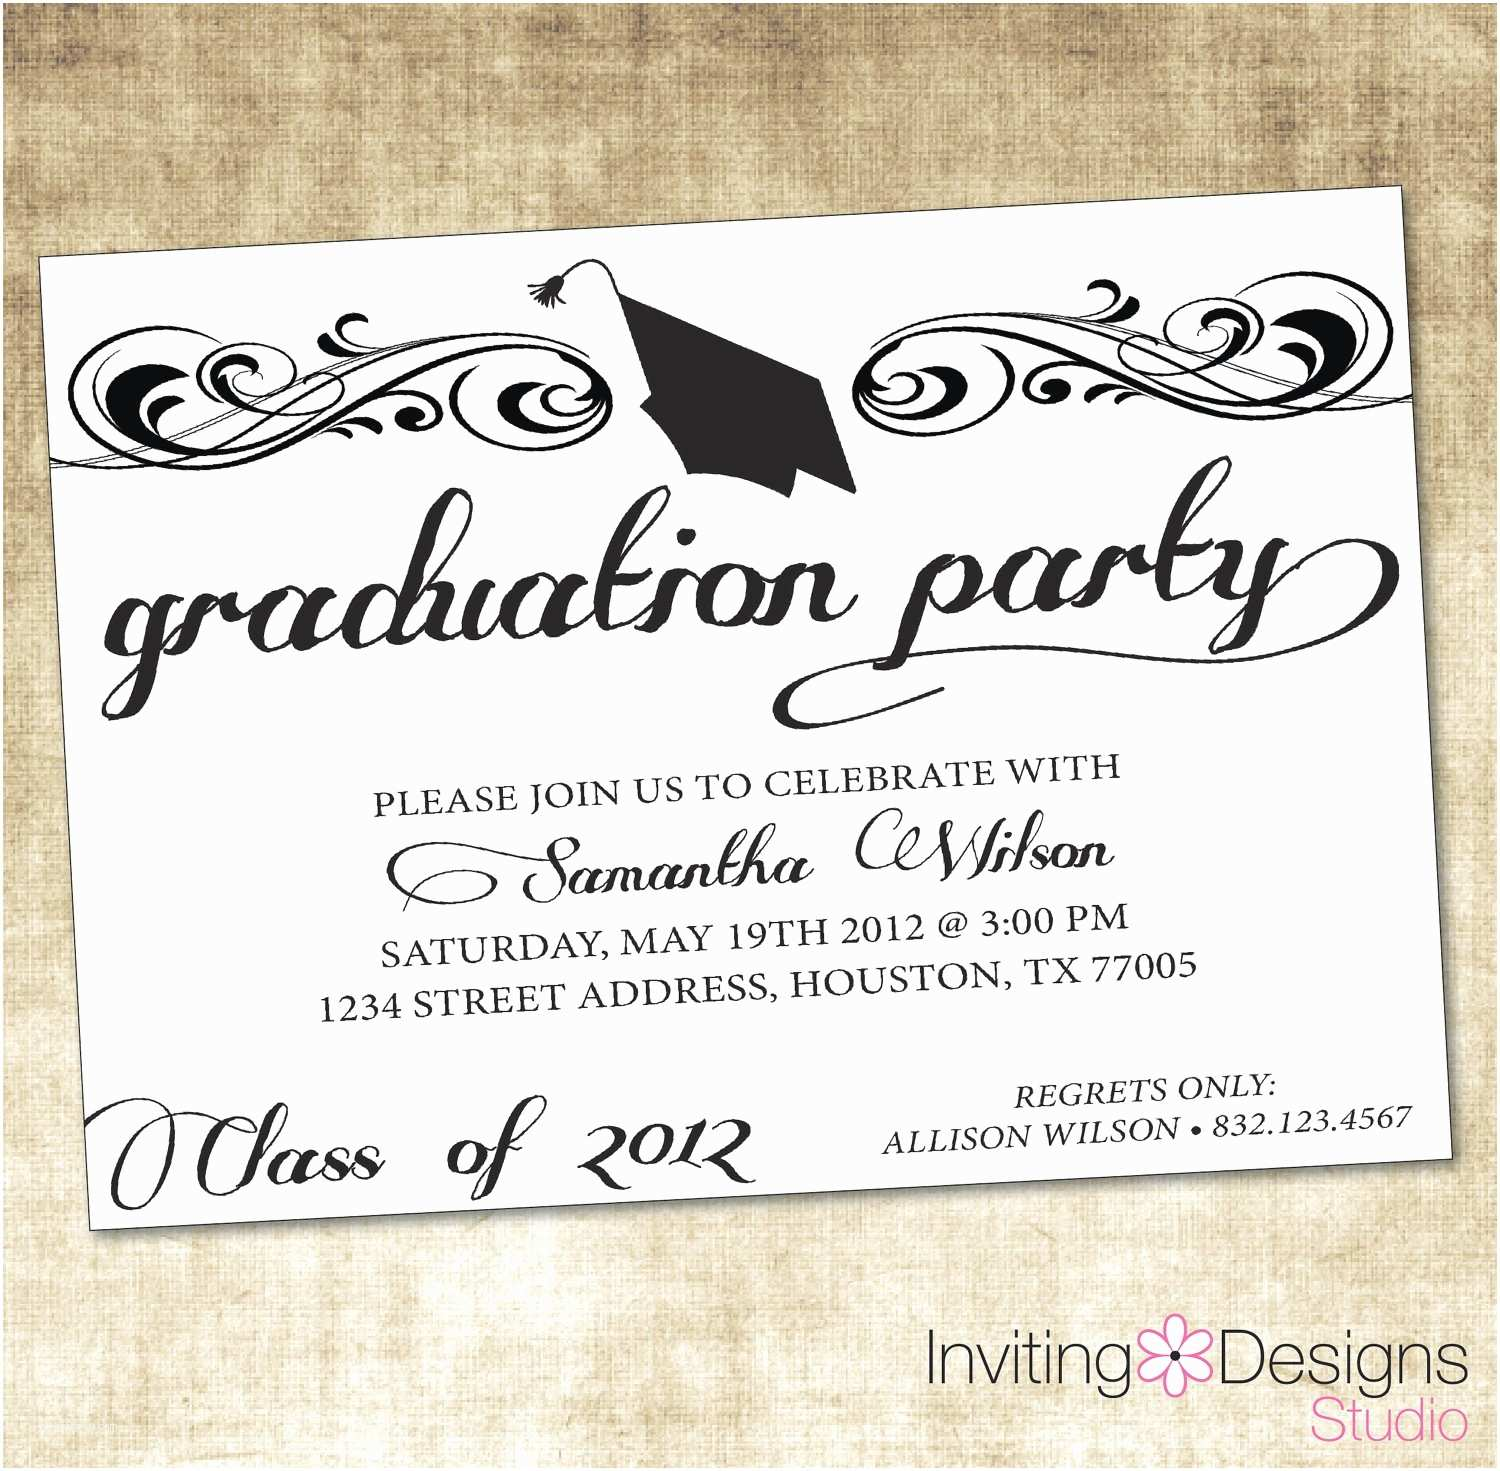 Sample Graduation Party Invitation Graduation Party Invitations Graduation Party